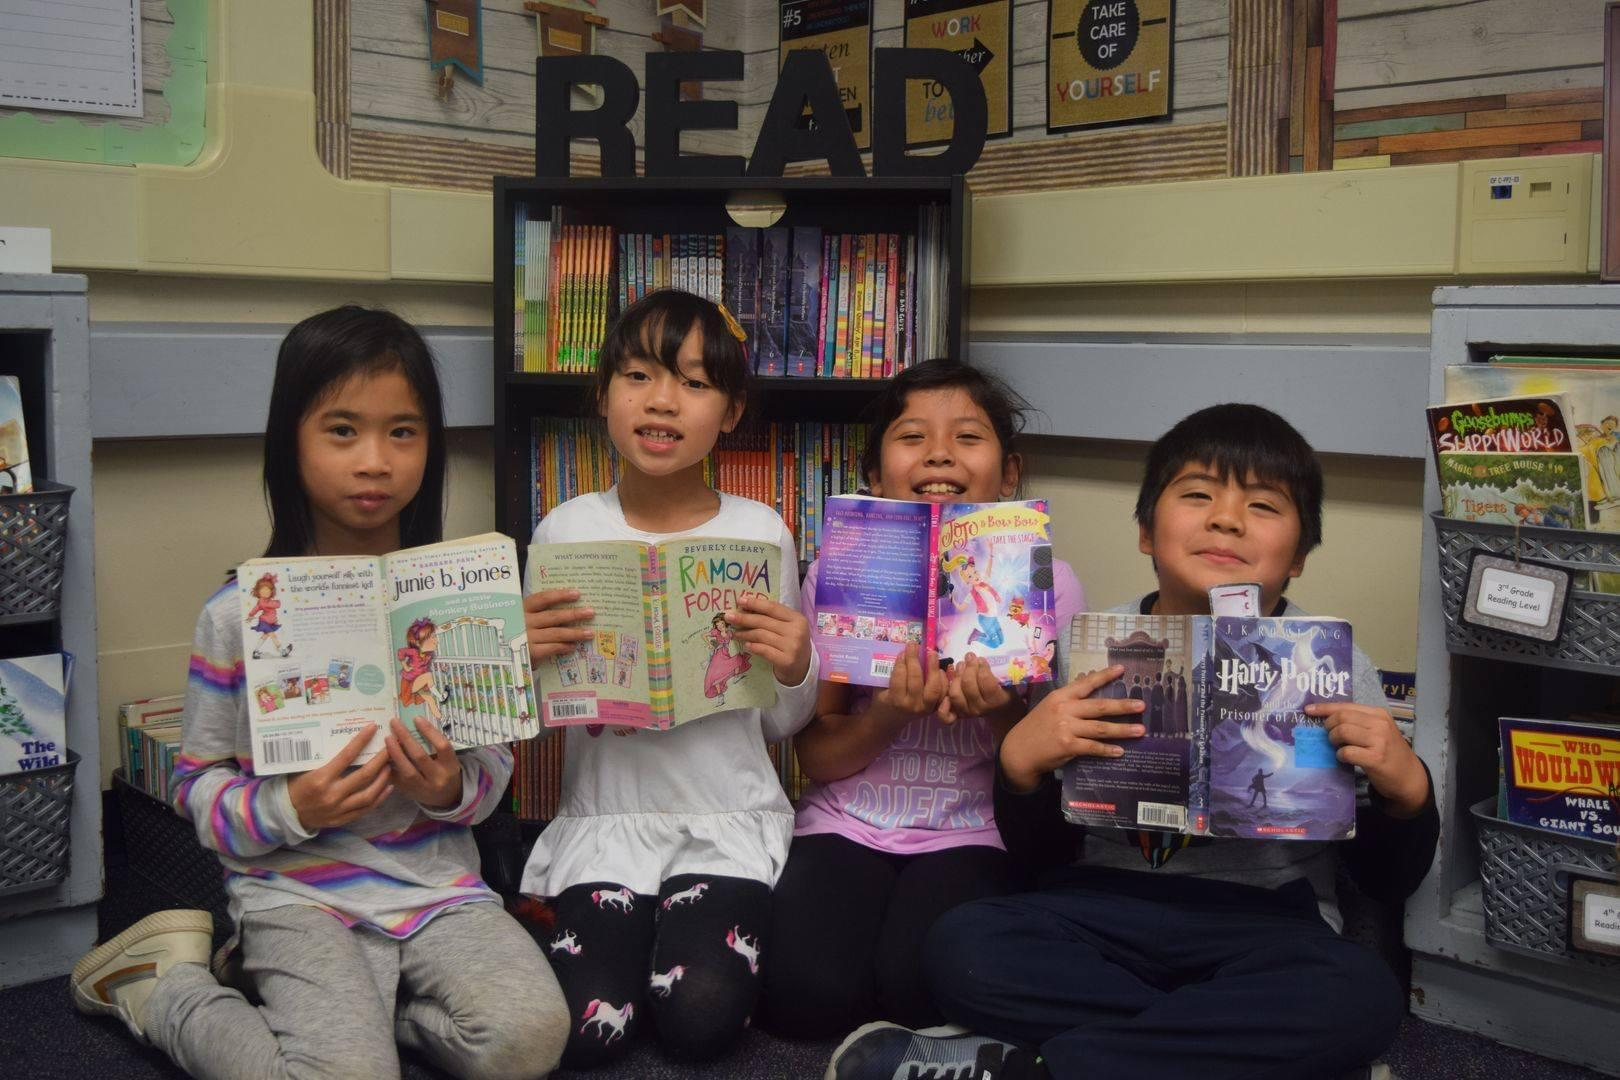 EMCSD Students Reading Together